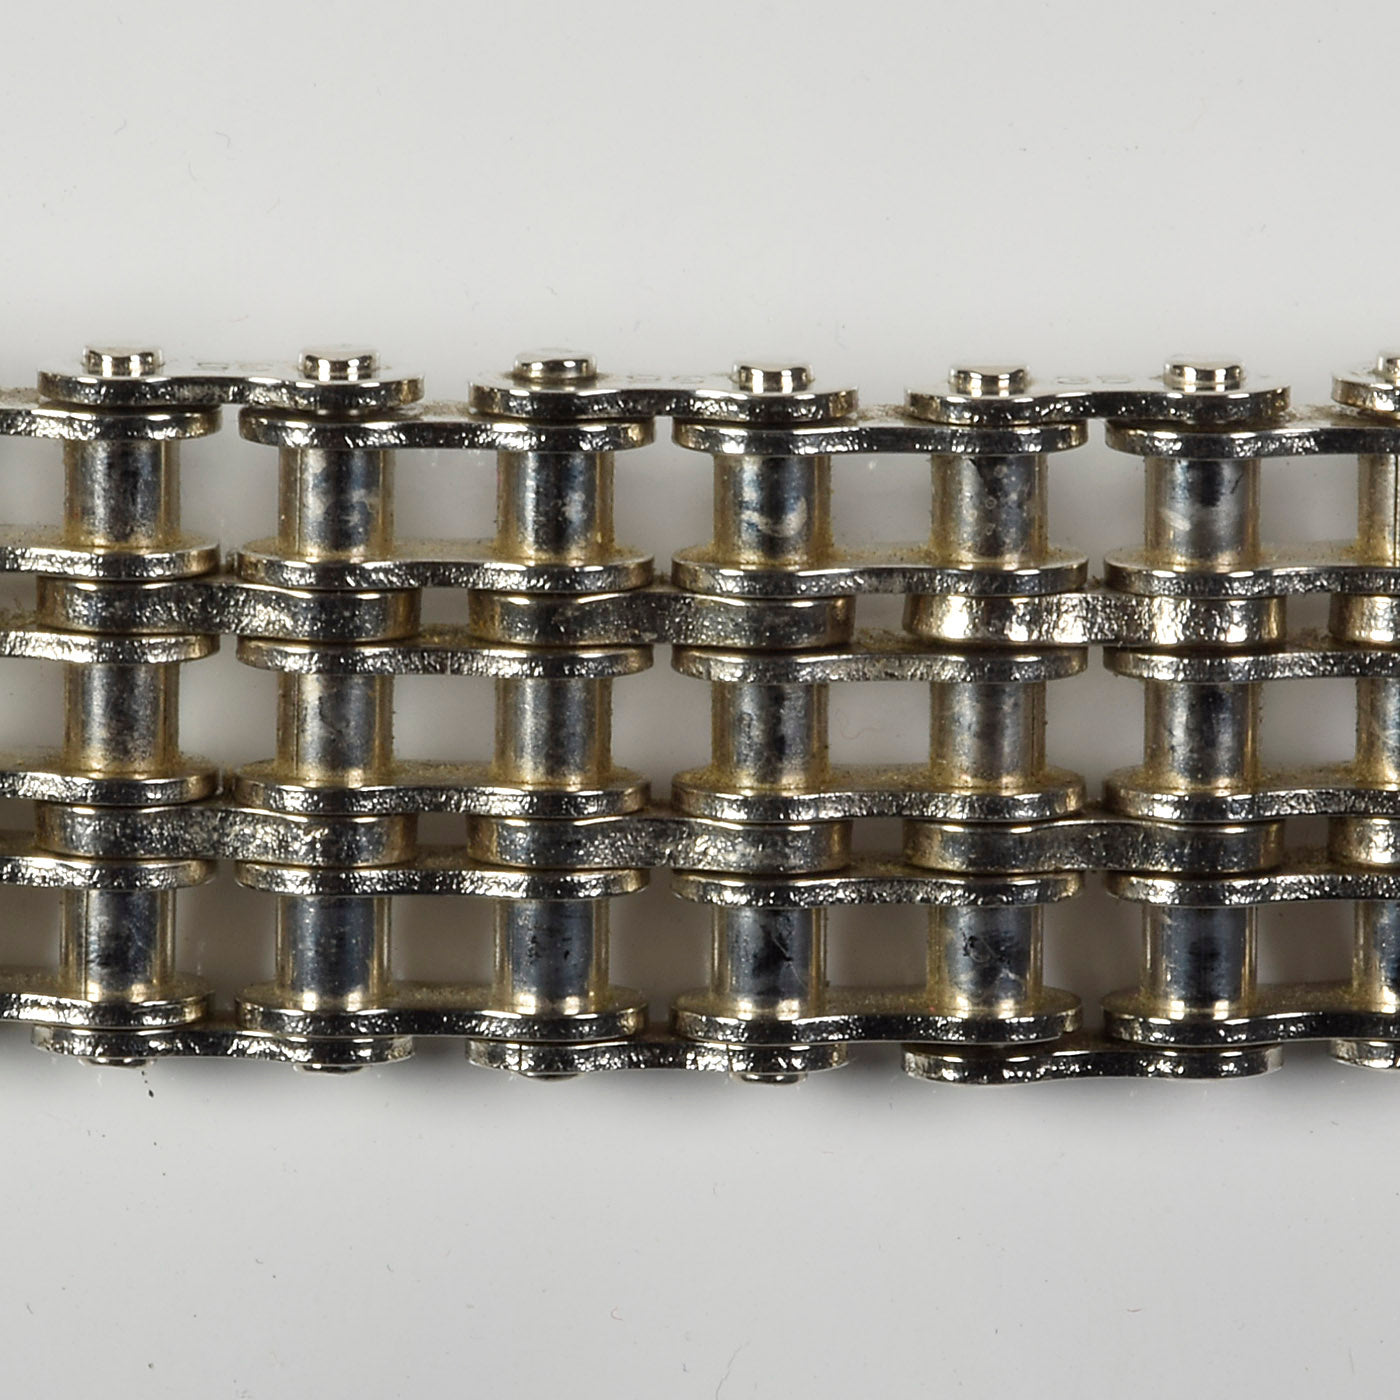 1990s Motorcycle Chain Belt